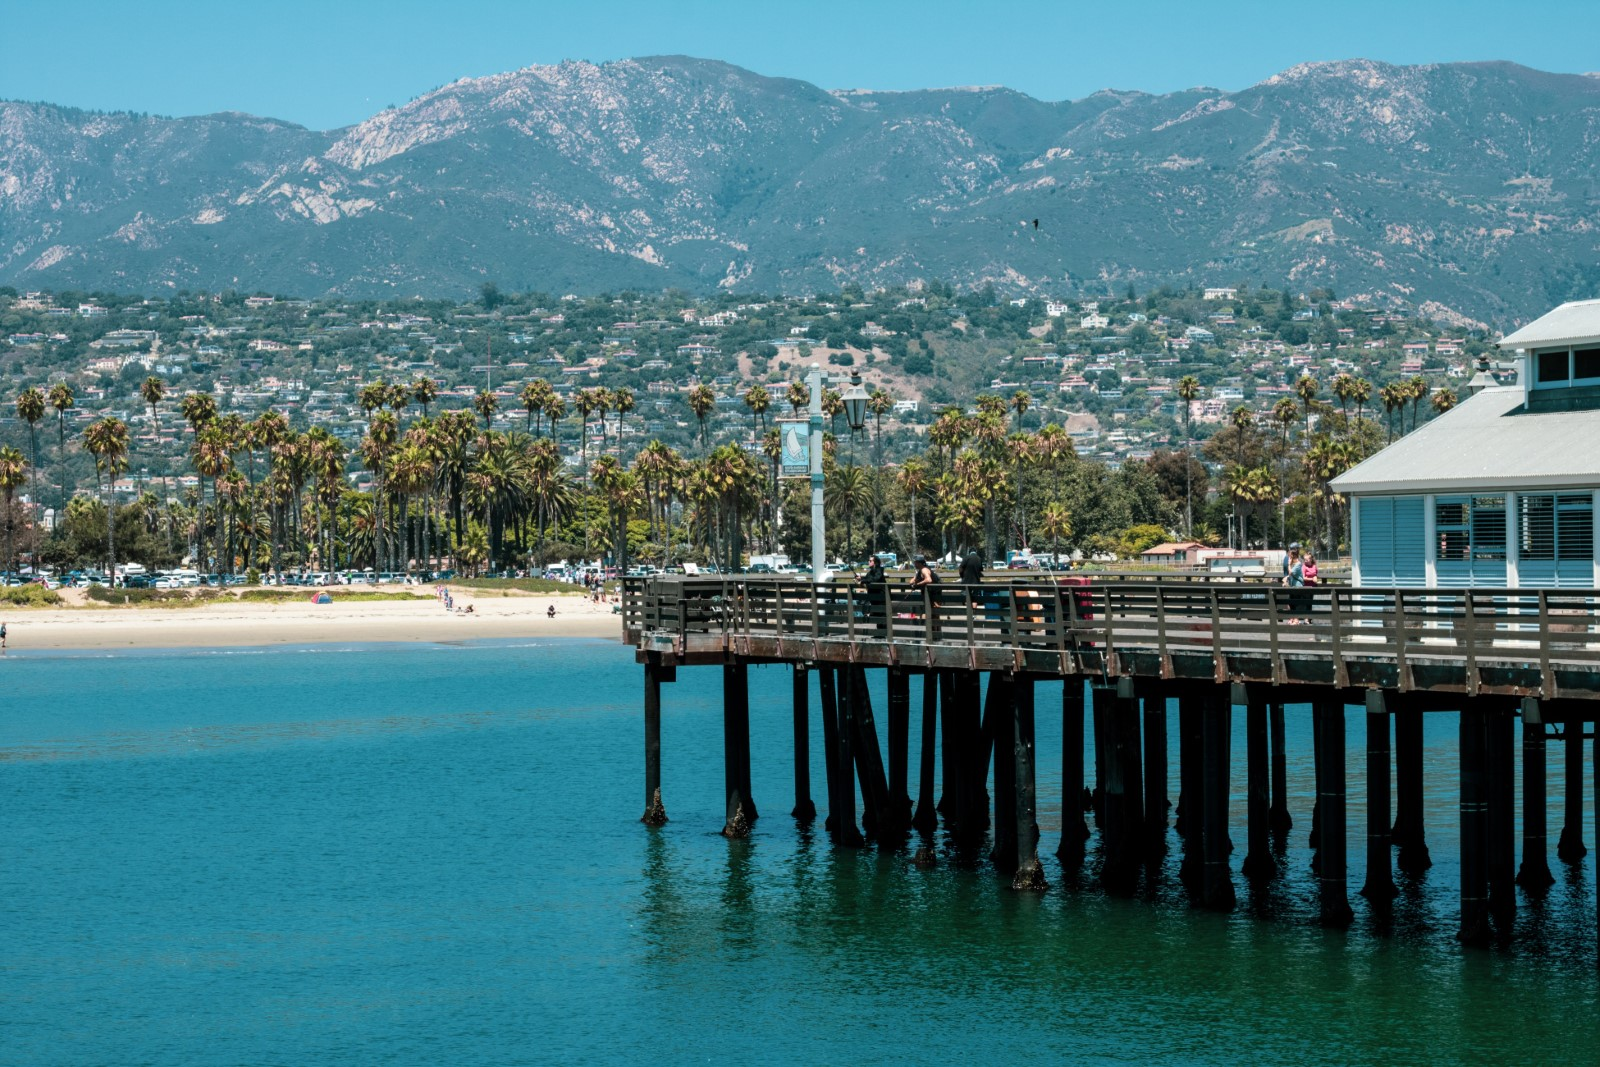 view of the pier in santa barbara